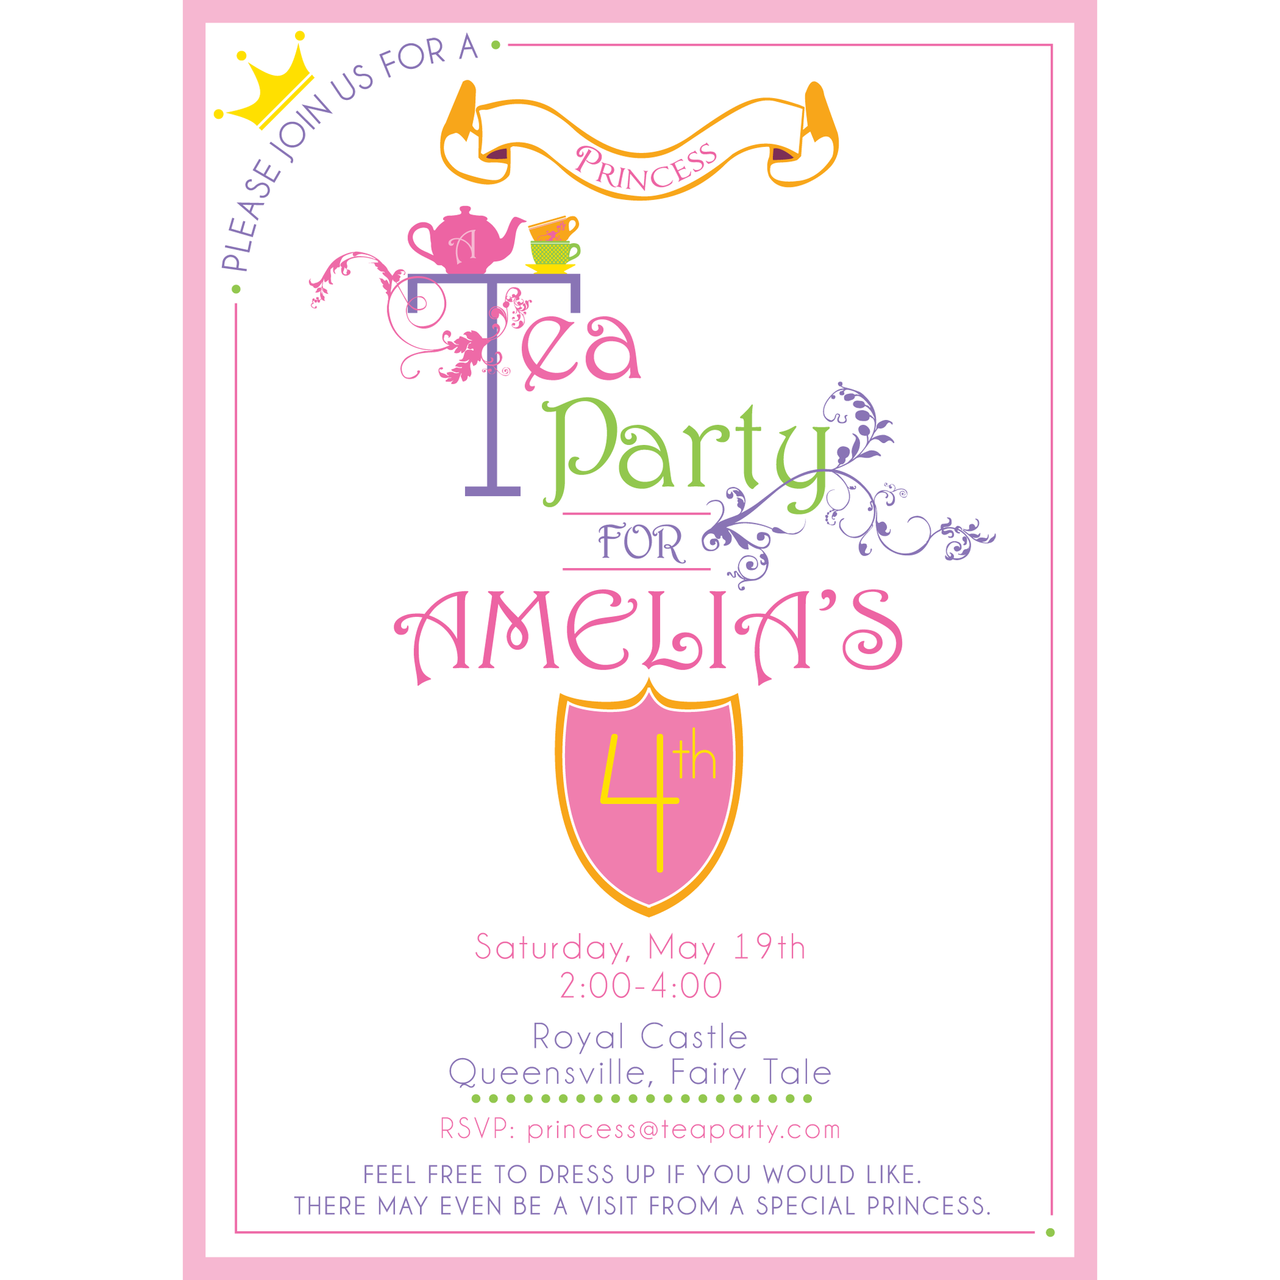 It's just an image of Free Printable Tea Party Invitations with garden party